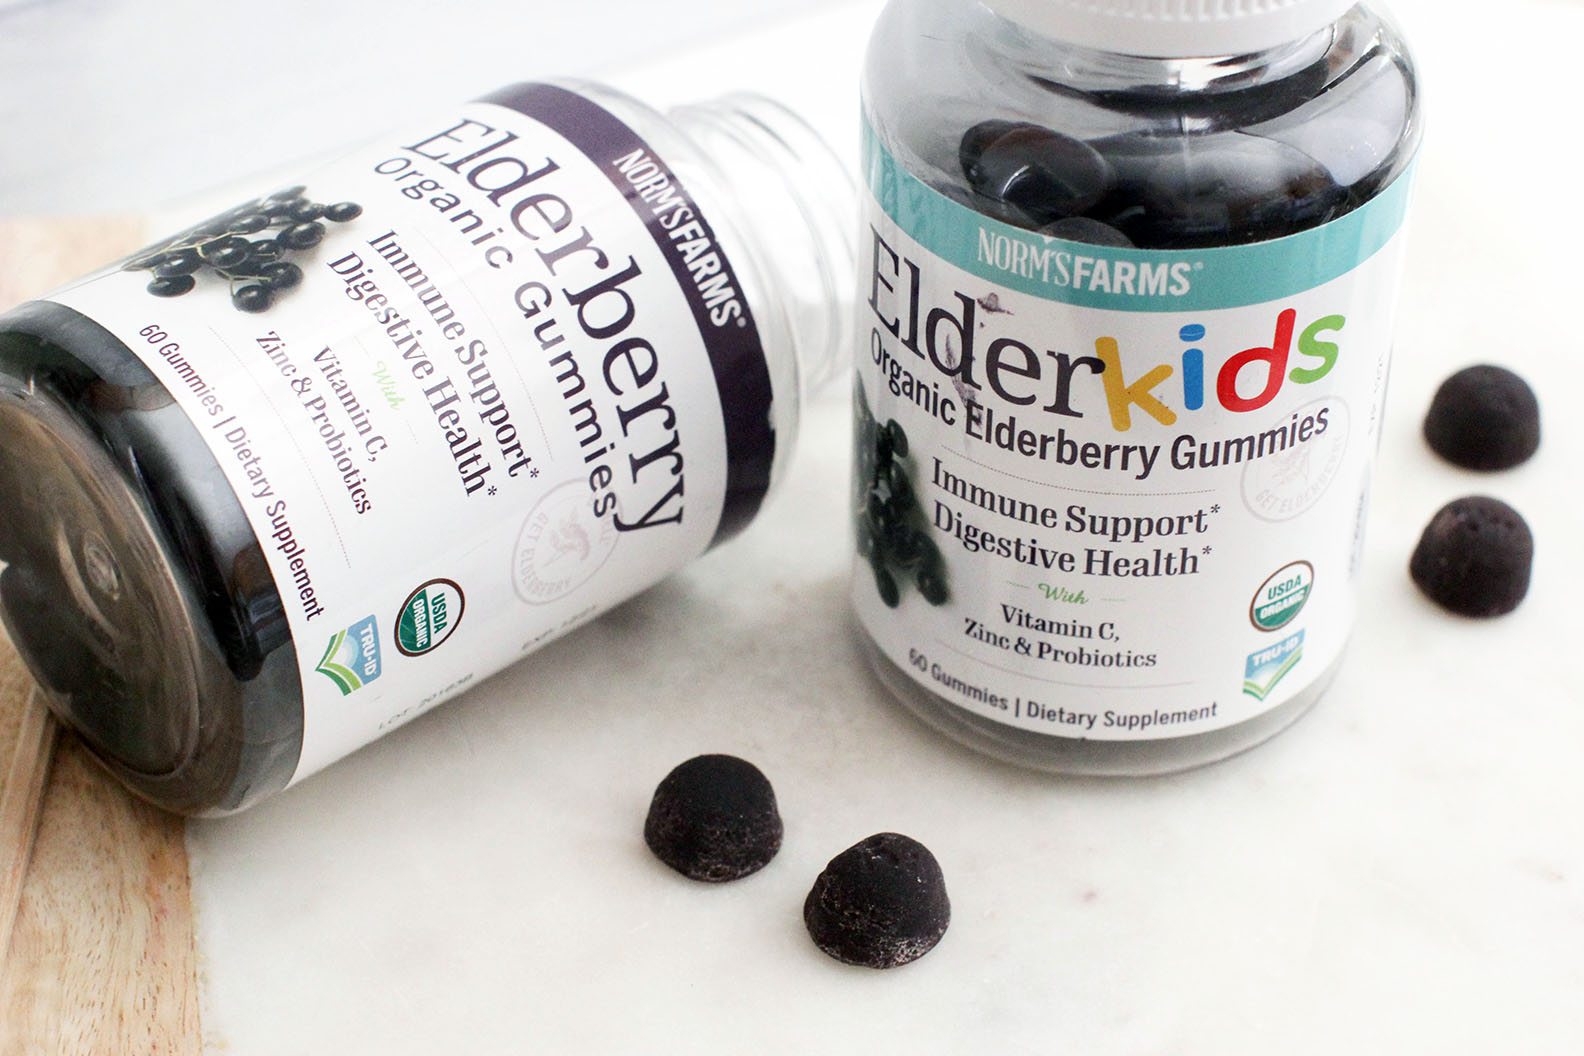 Amp Up Your Health With Elderberry Gummies For Kids & Adults!